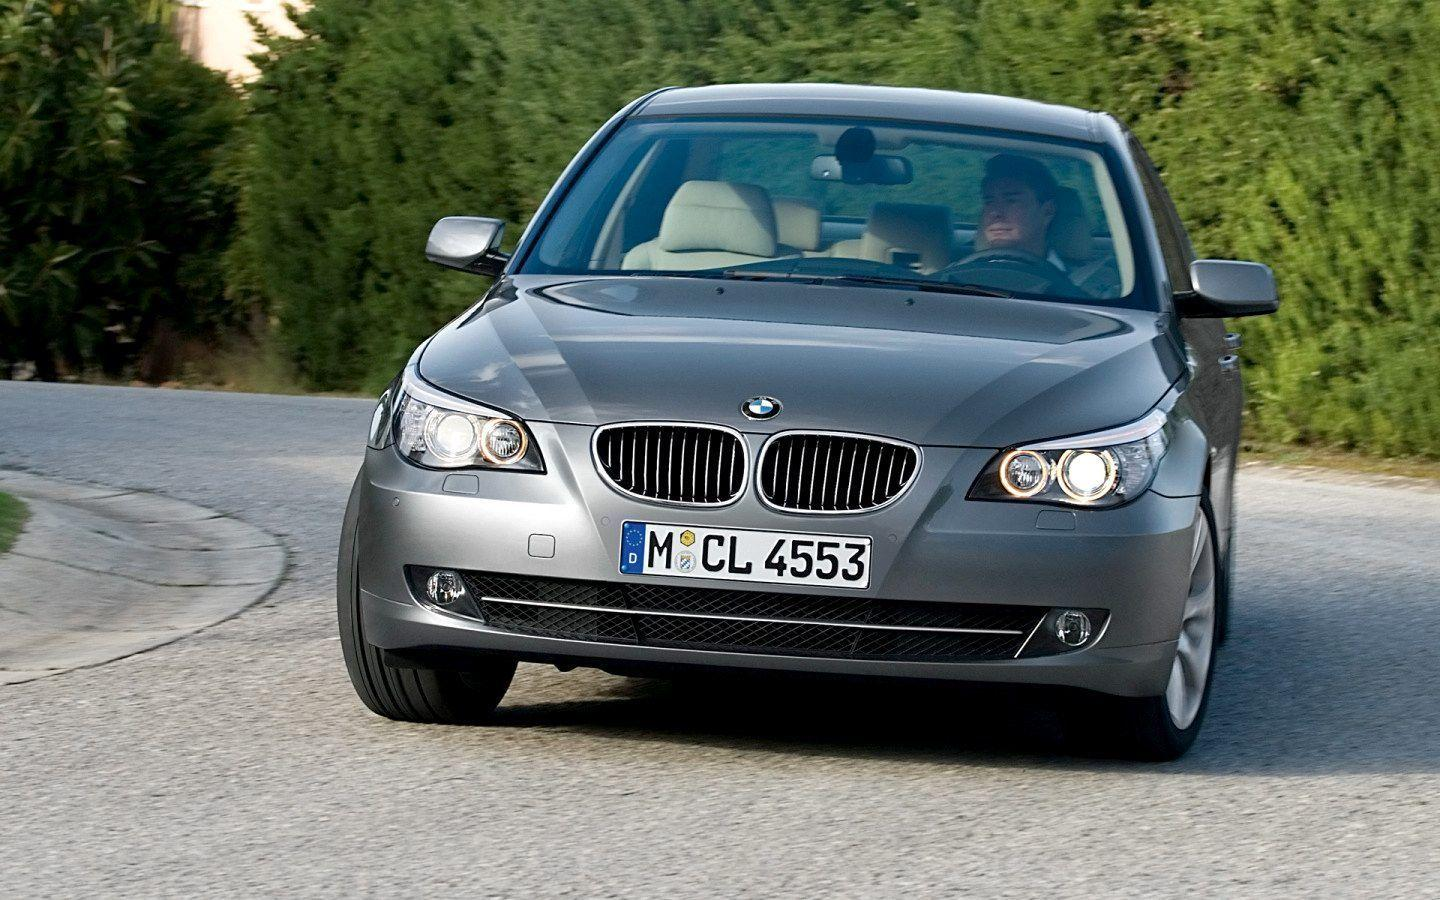 2008 BMW 5 Series Wallpaper 11 - 1440x900